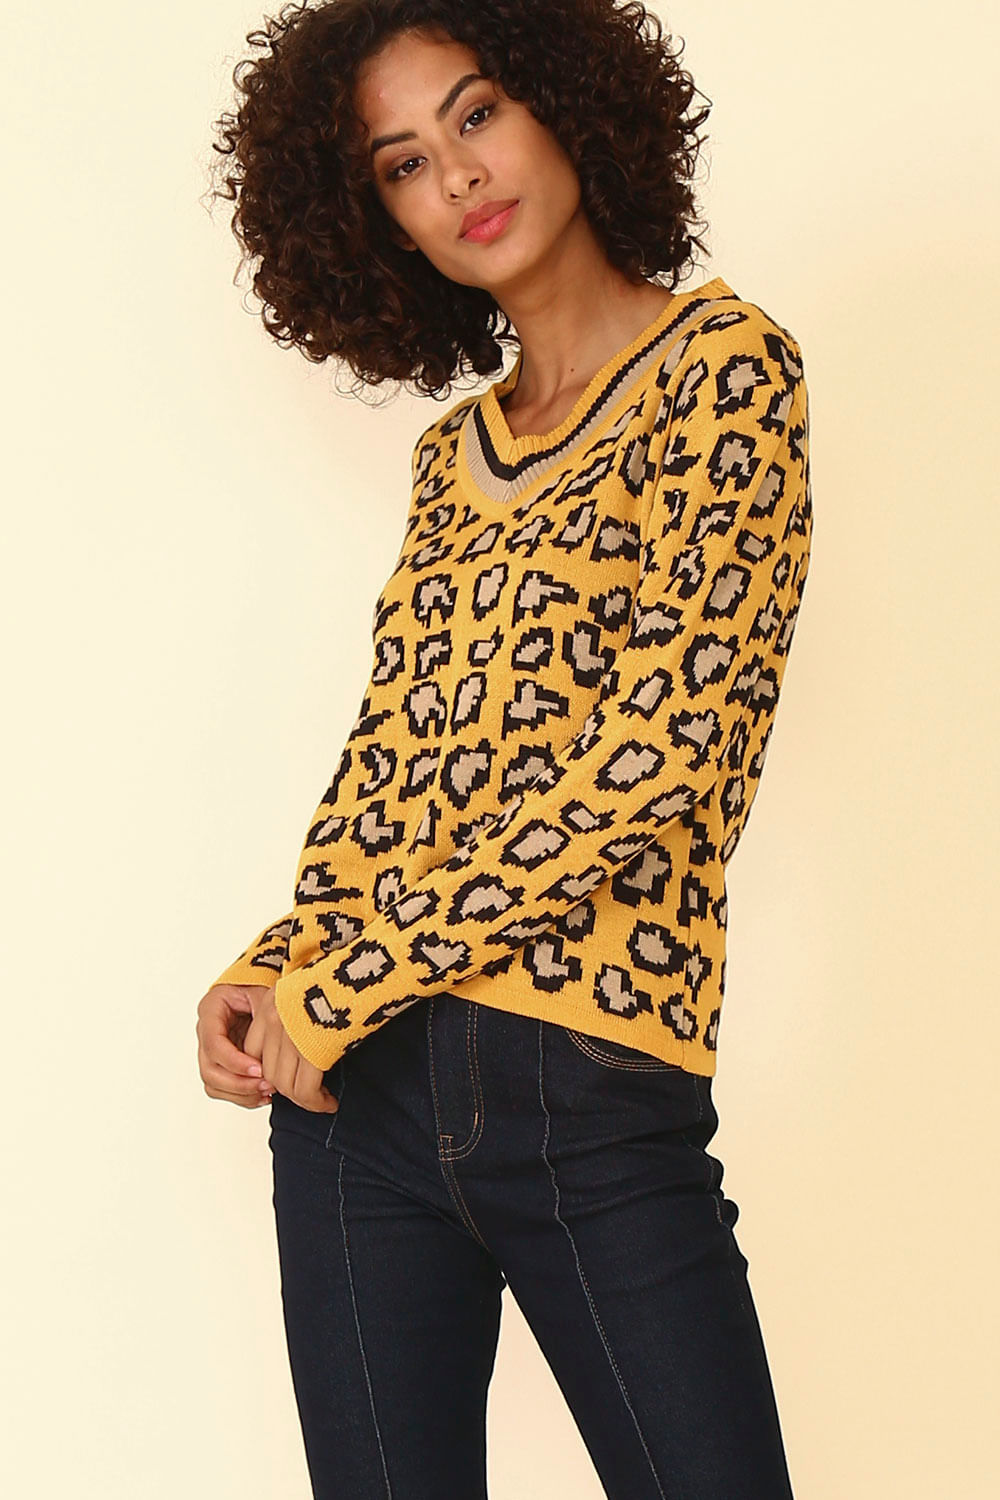 02110208_0007_1-BLUSA-TRICOT-ONCA